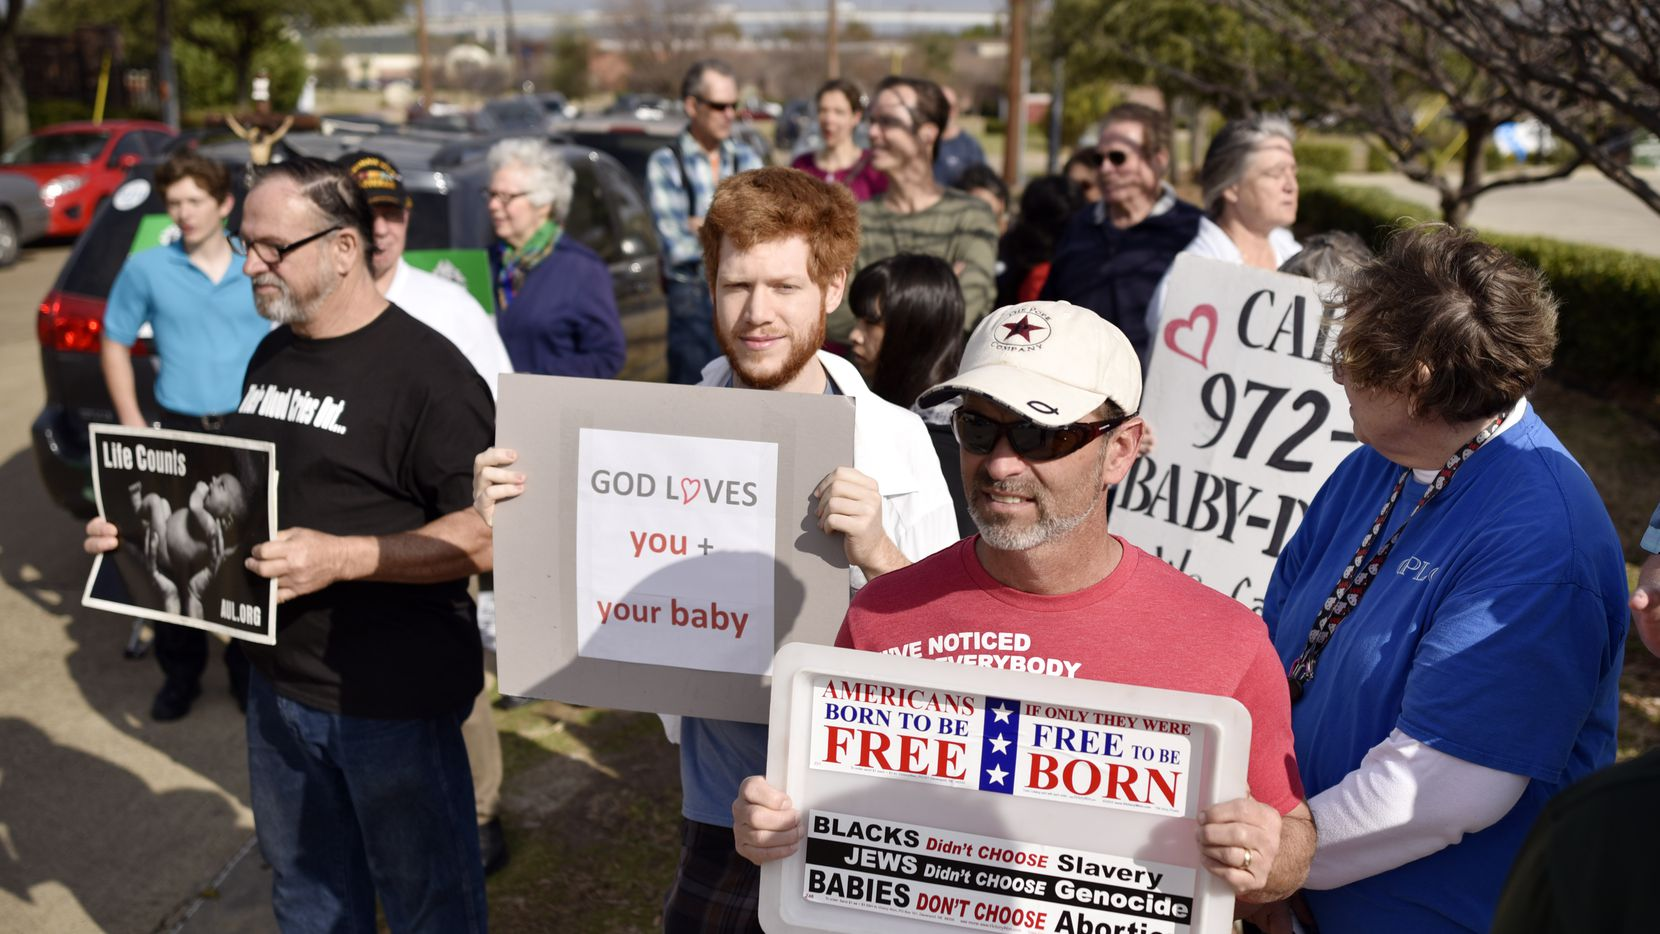 Abortion opponents Ethan Moon, 24, left, of Dallas, and Bobby Pope, 50, of Forney, hold their signs while quietly standing along a sidewalk during a protests outside of the Planned Parenthood, South Dallas Surgical Health Services Center, Saturday morning, Feb. 11, 2017 in Dallas.